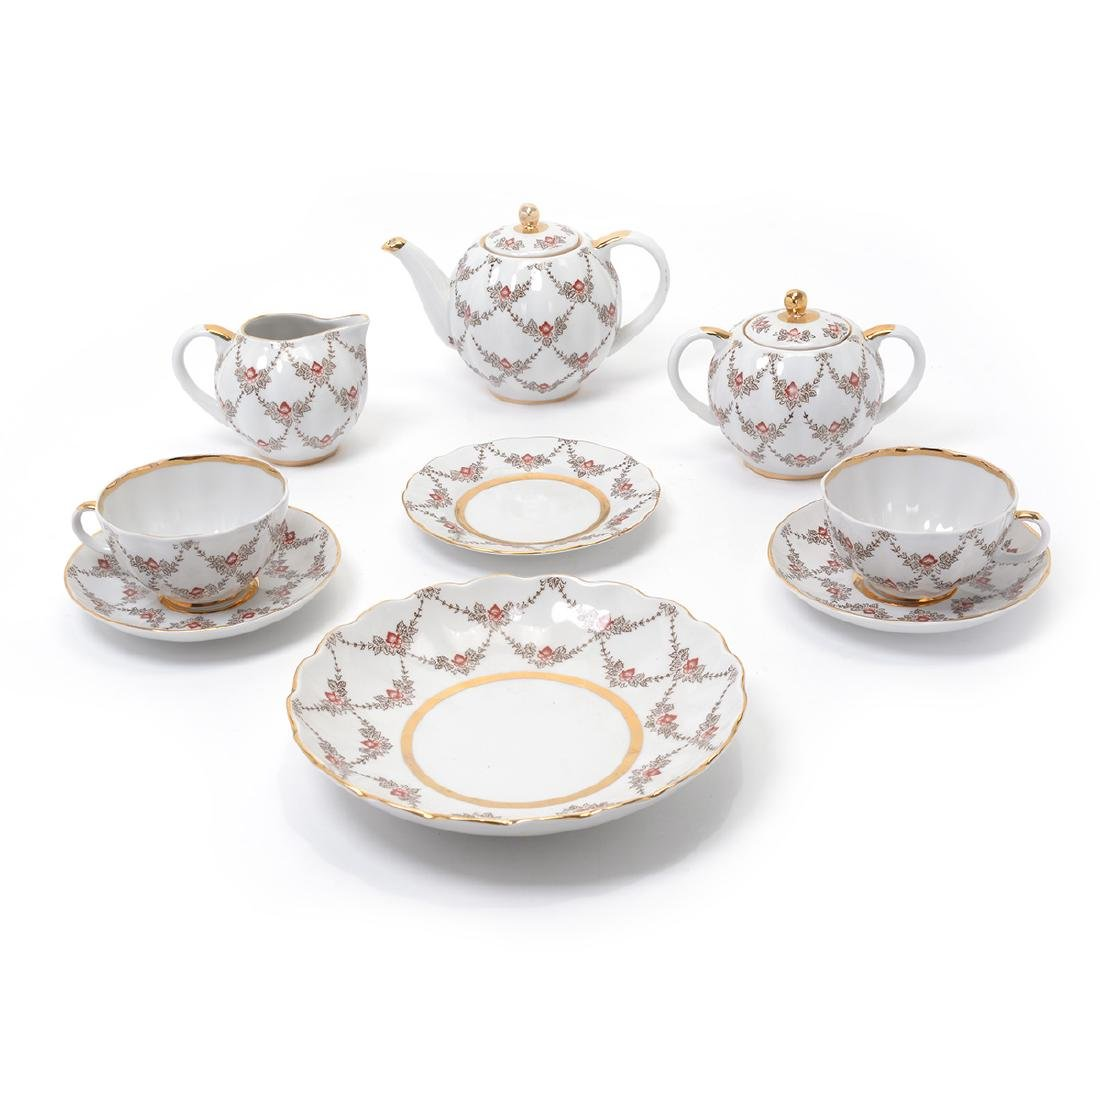 Lomonsov Tea Service (20 pieces)